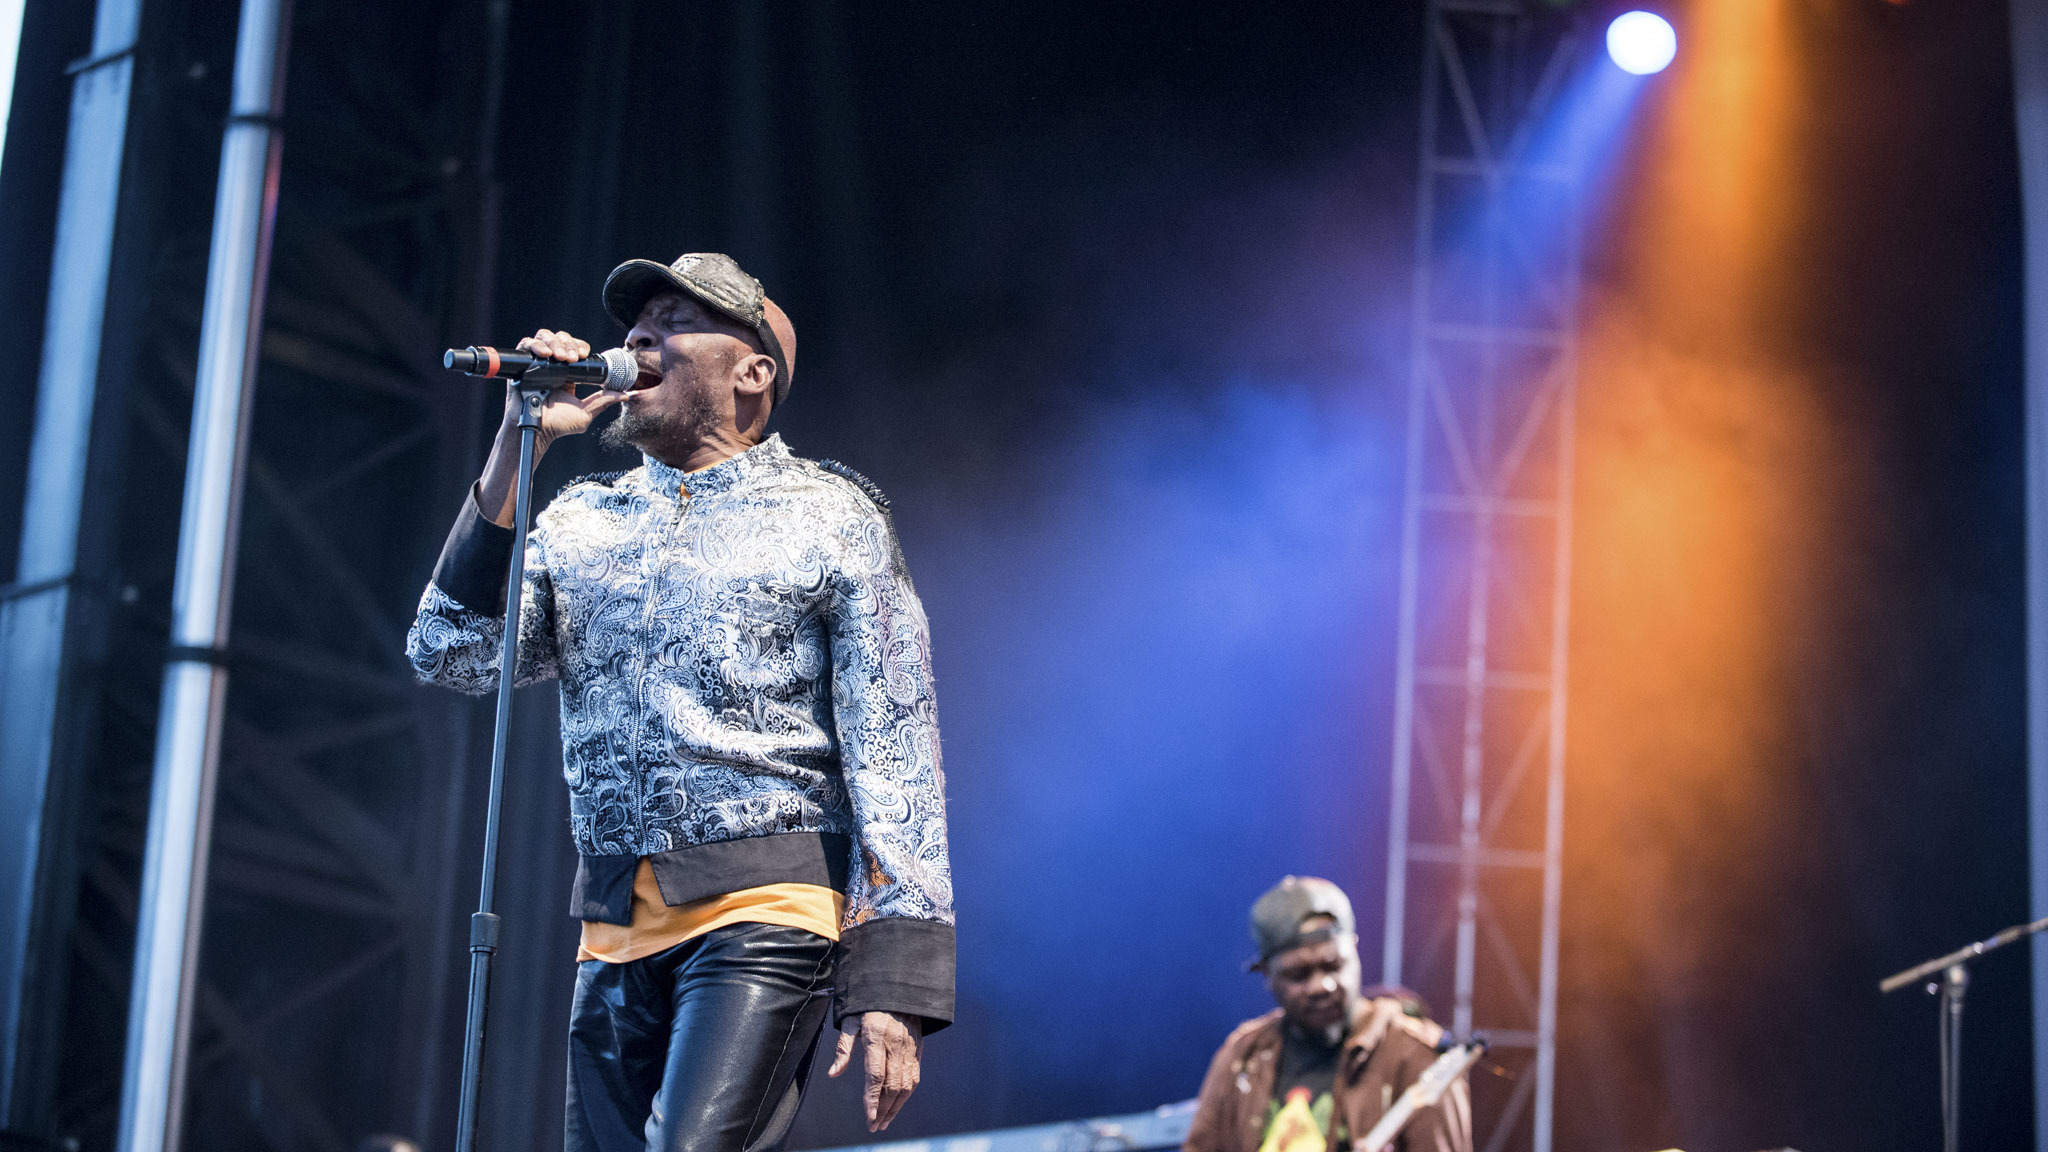 Jimmy Cliff turned in a set on the final day of Riot Fest, September 13, 2015.